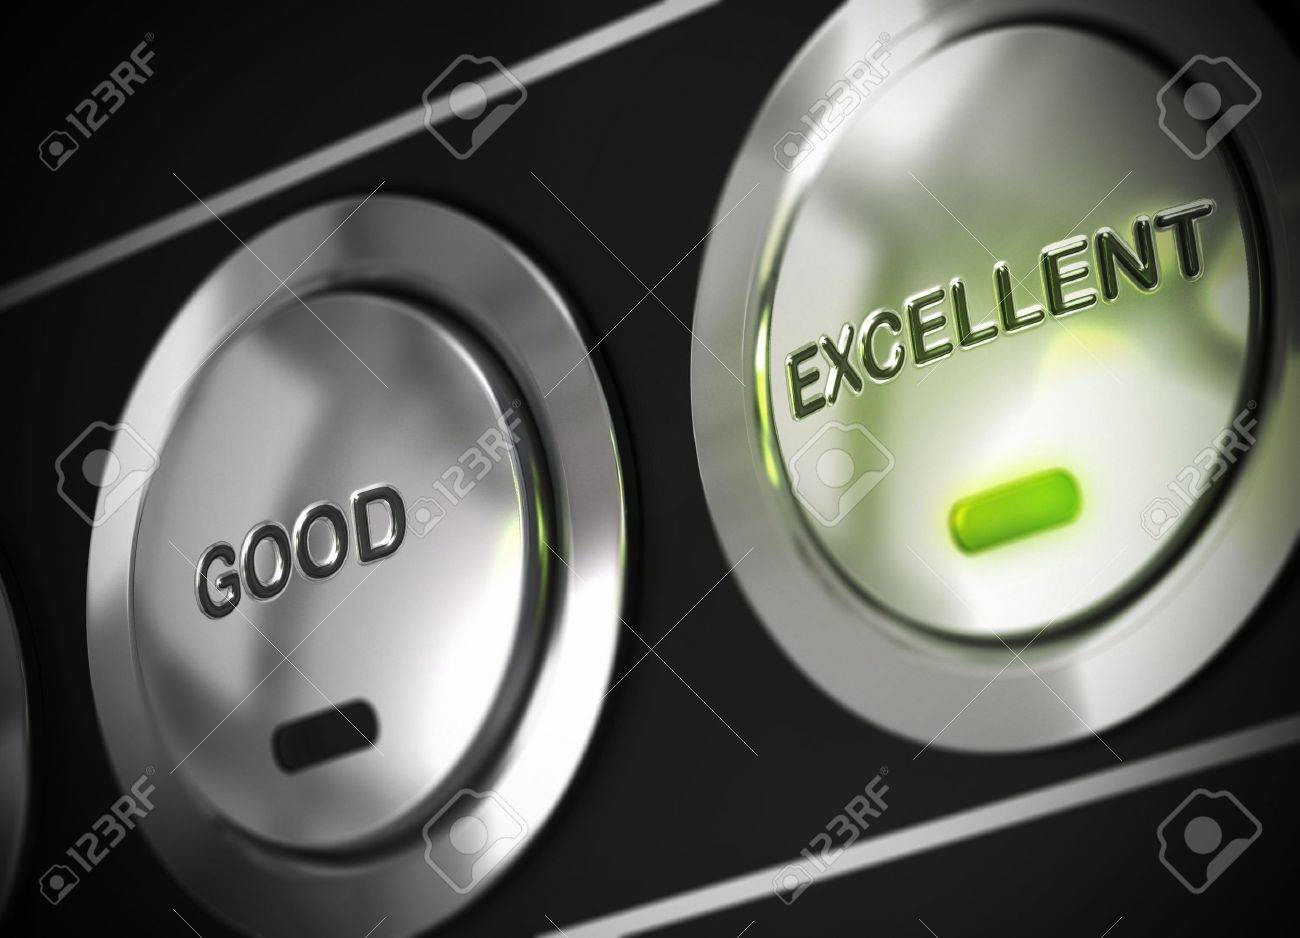 excellent button pressed with light of a green led, there is also a good button viewable, symbol of excellence Stock Photo - 13873840